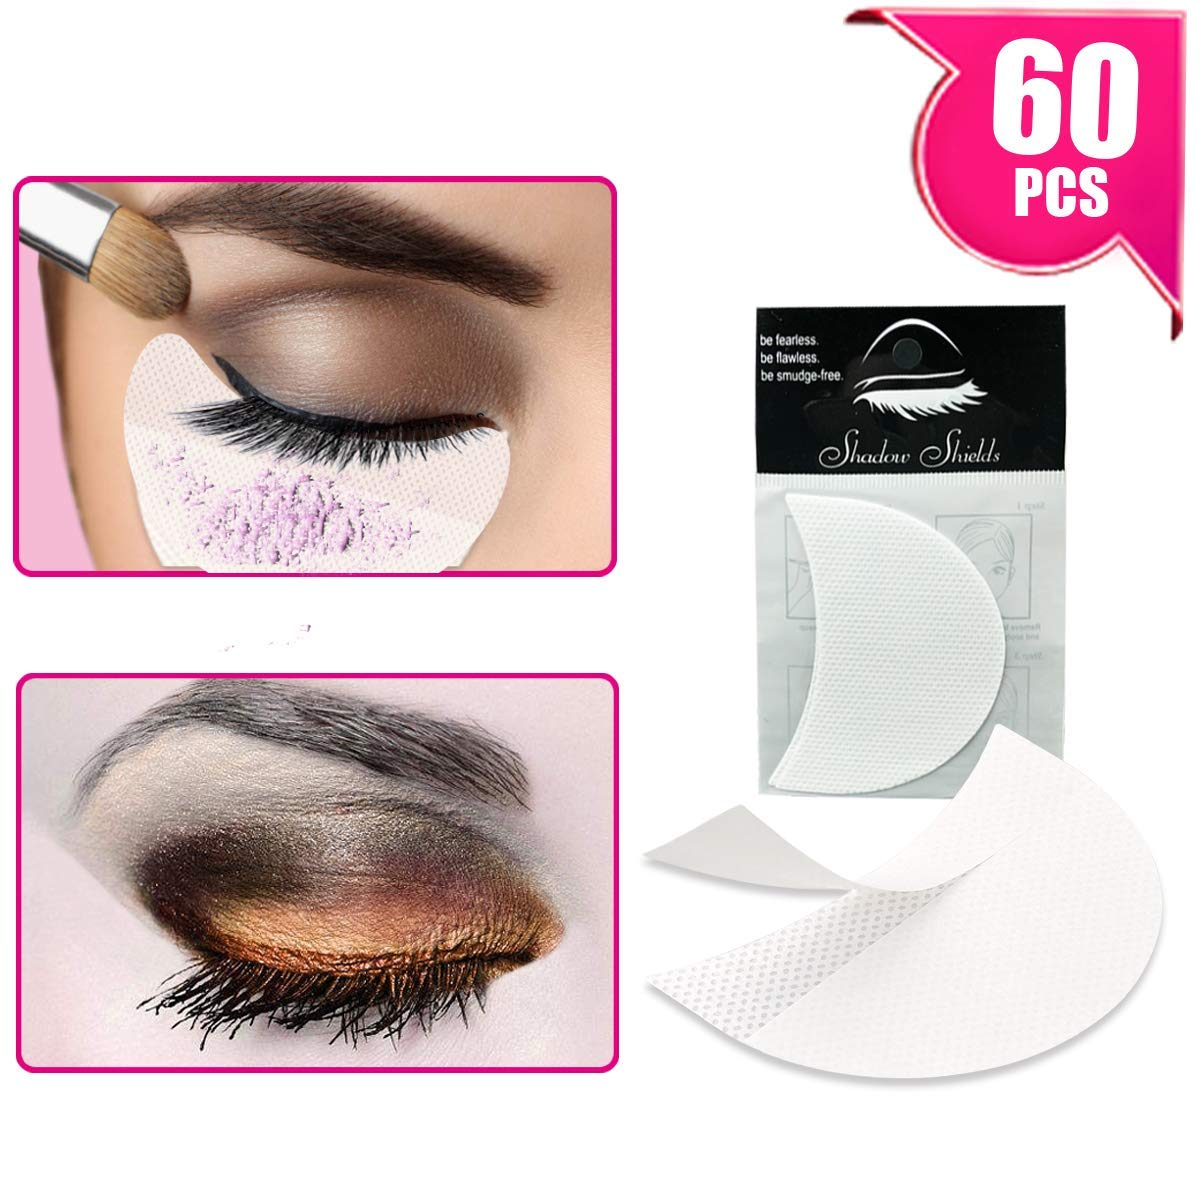 TailaiMei 120 Pcs Professional Eyeshadow Shields for Eye Makeup, Lint Free Eye Pad for Eyelash Extensions/Tinting and Lip Makeup - Under Patches Guards Prevent Makeup Residue